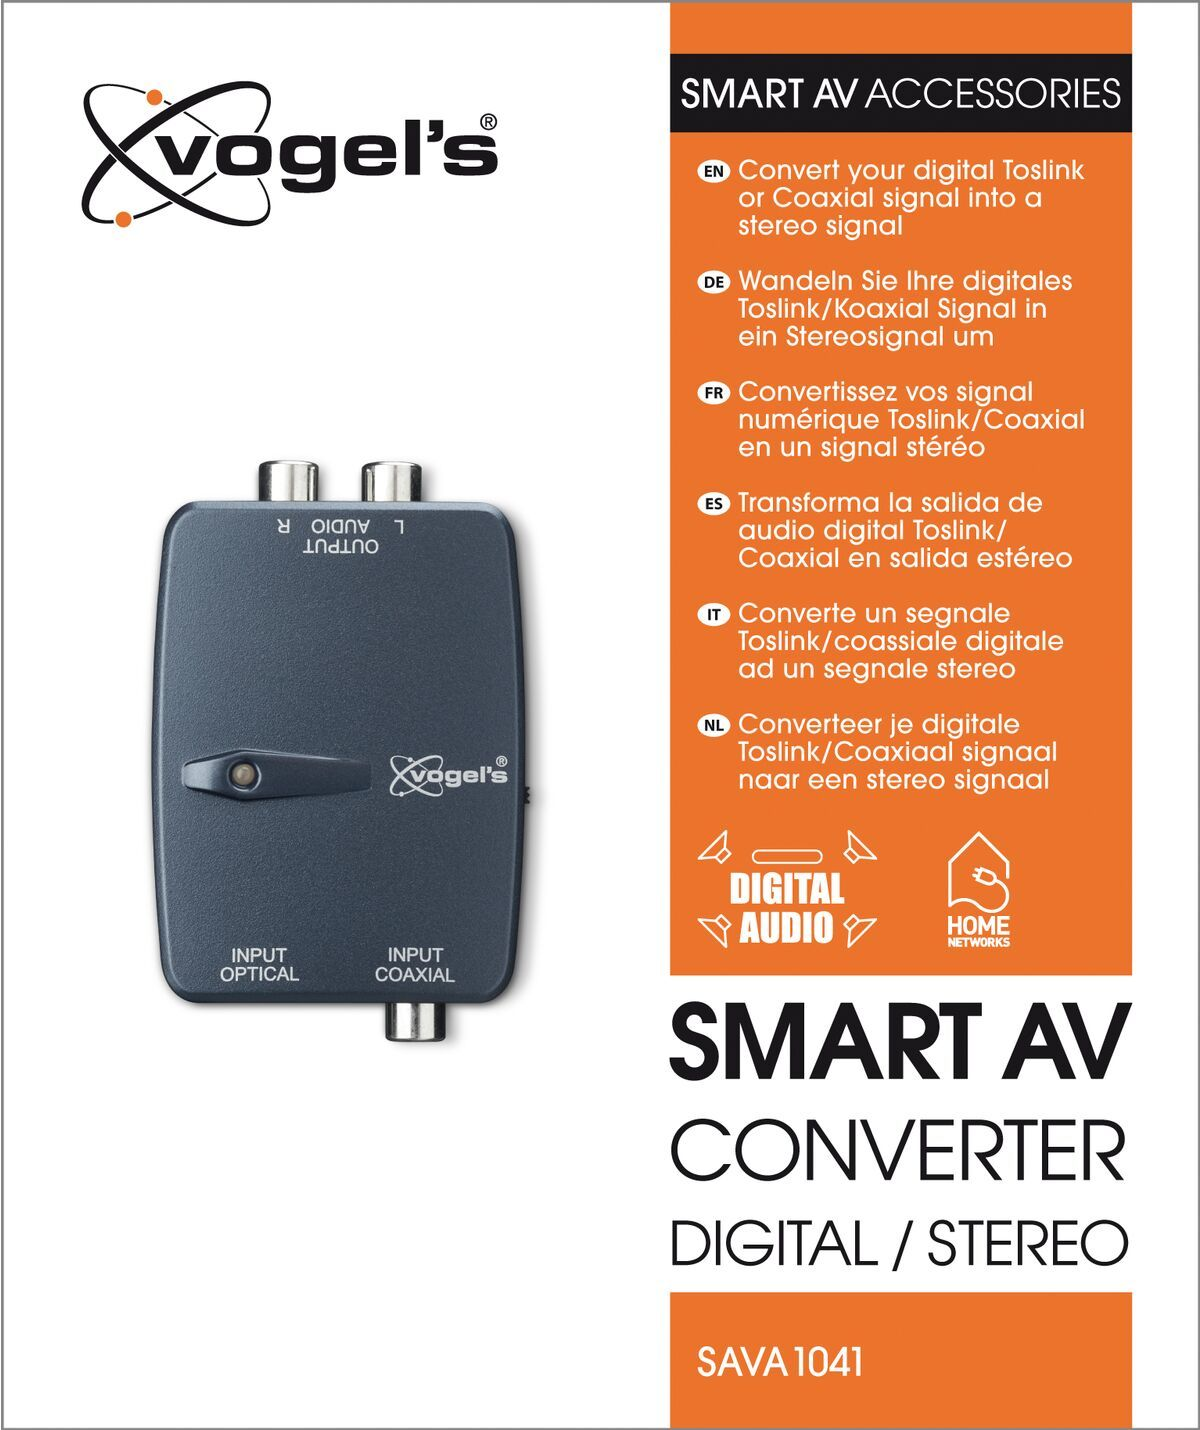 Vogel's SAVA 1041 Smart AV converter digital / stereo - Packaging front